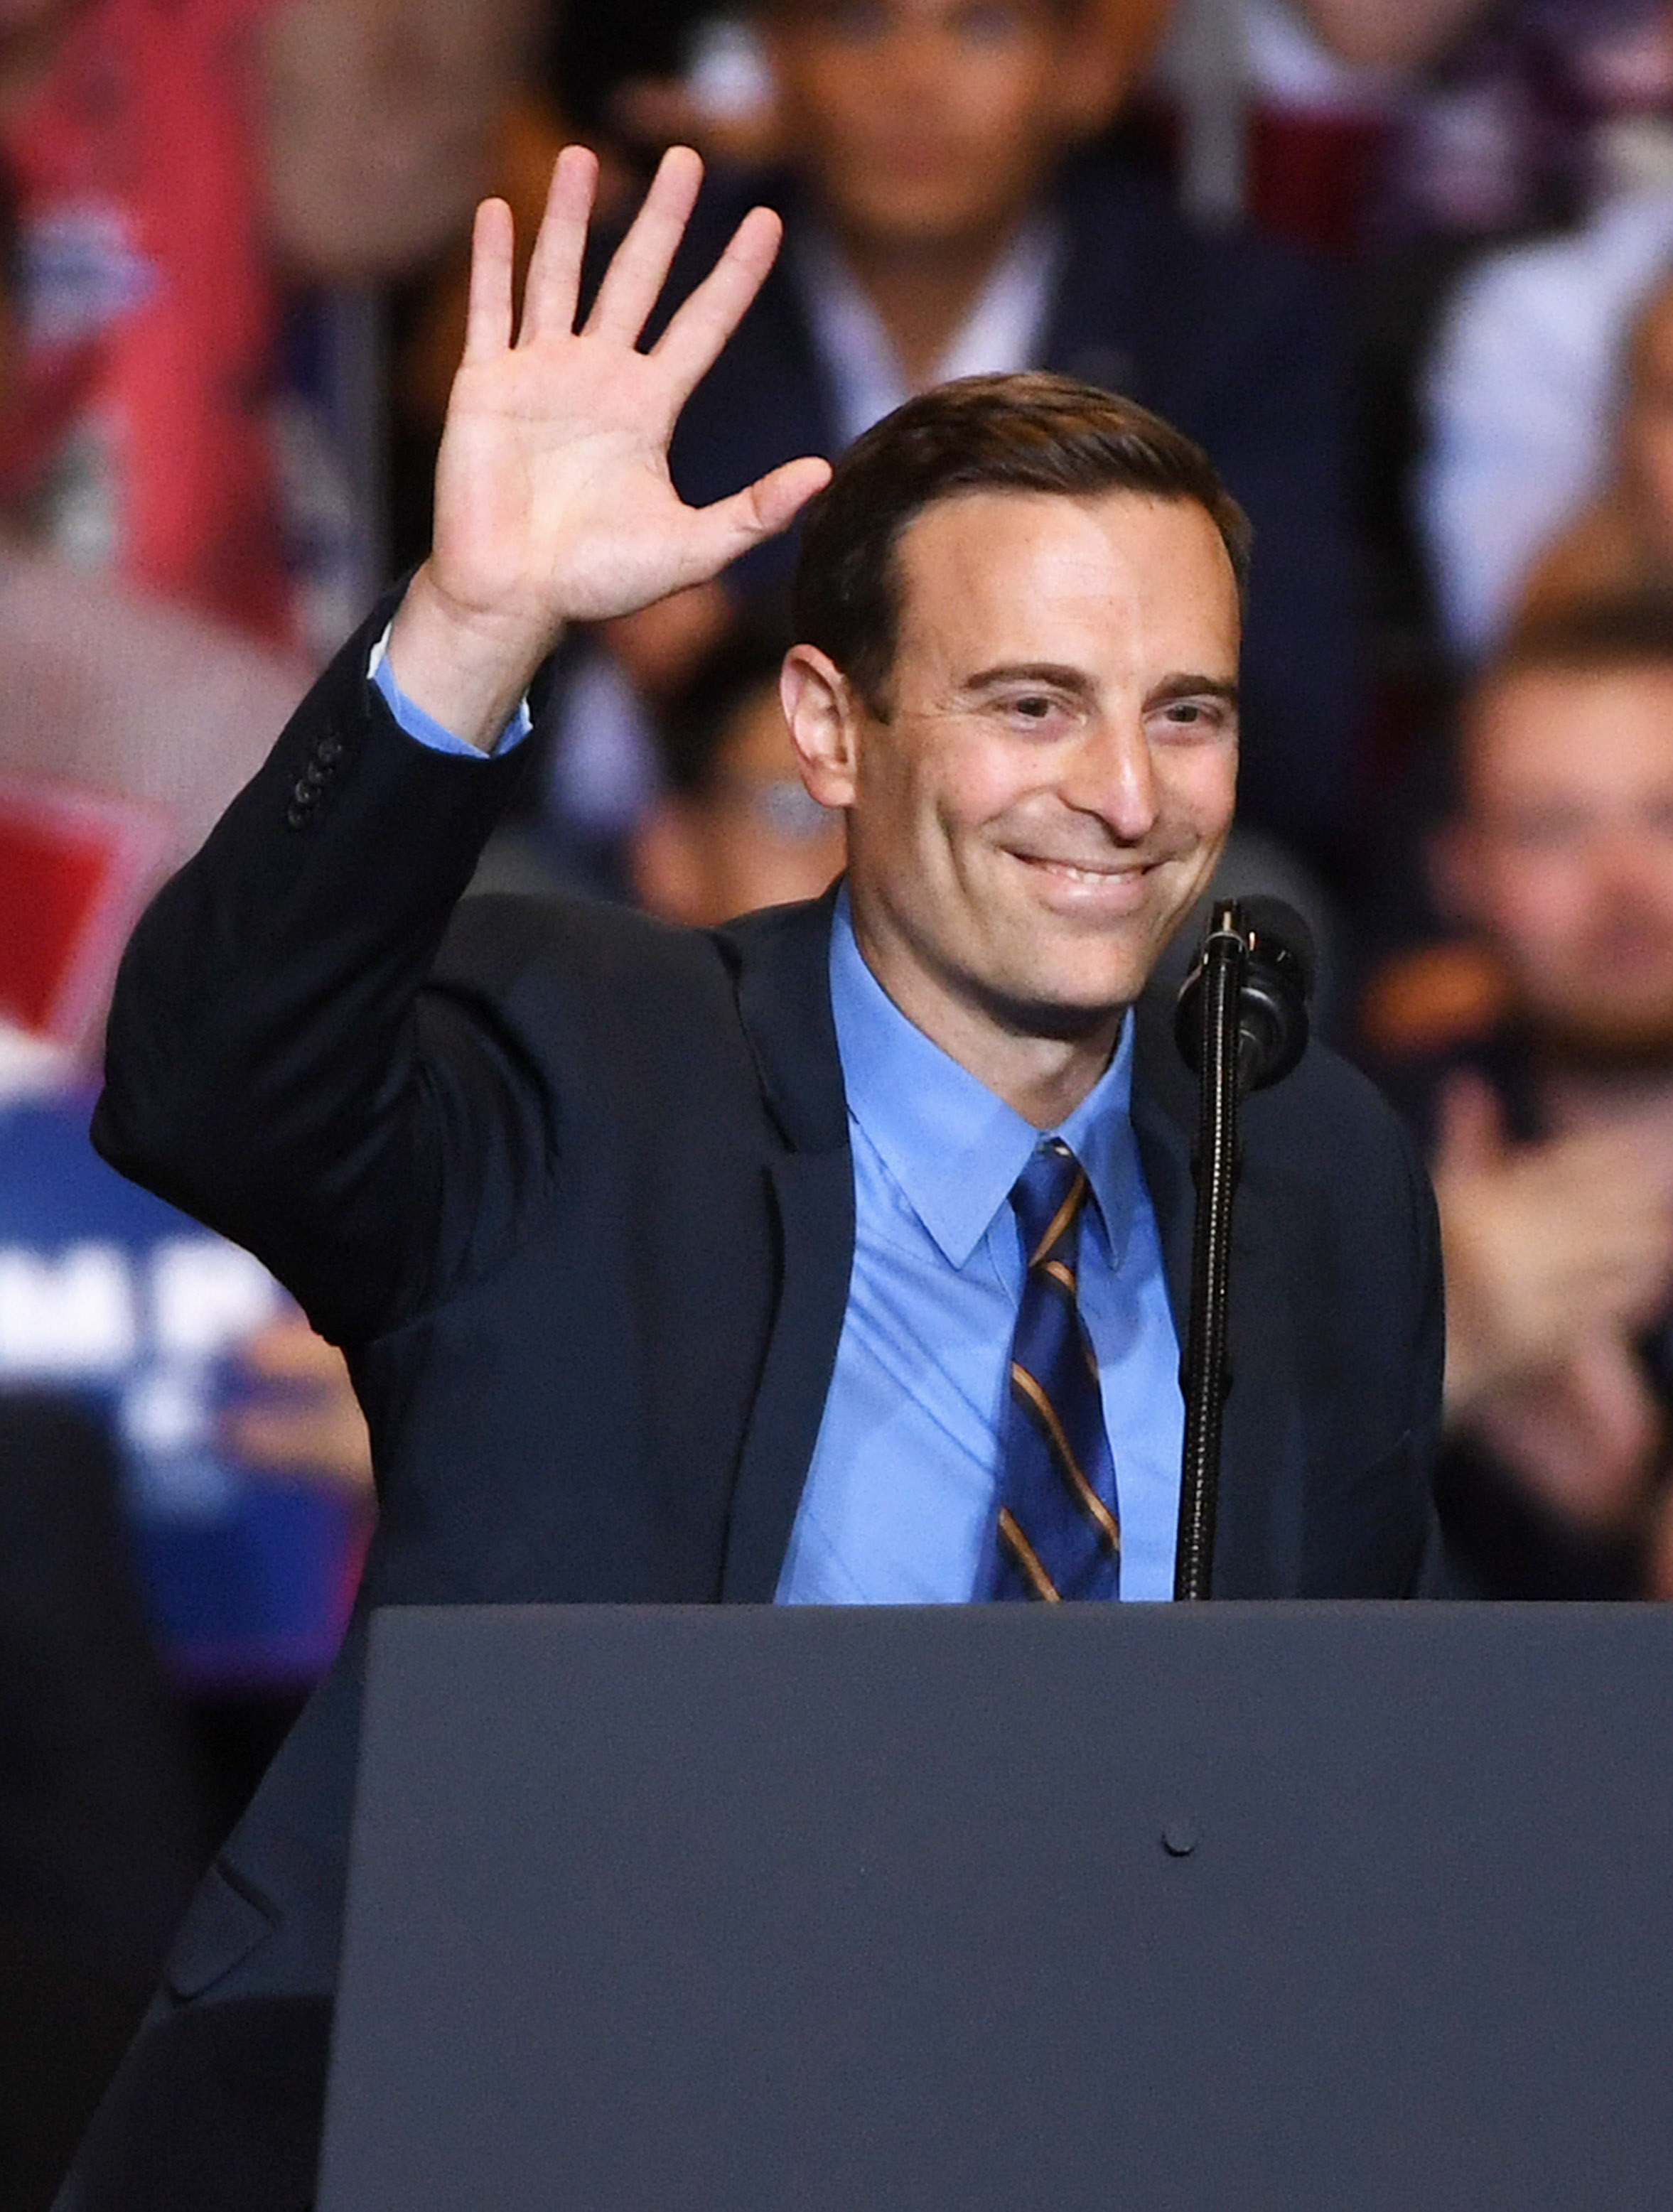 Nevada Attorney General and Republican gubernatorial candidate Adam Laxalt waves after speaking during a Donald Trump campaign rally at the Las Vegas Convention Center on September 20, 2018 in Las Vegas, Nevada. Ethan Miller/Getty Images